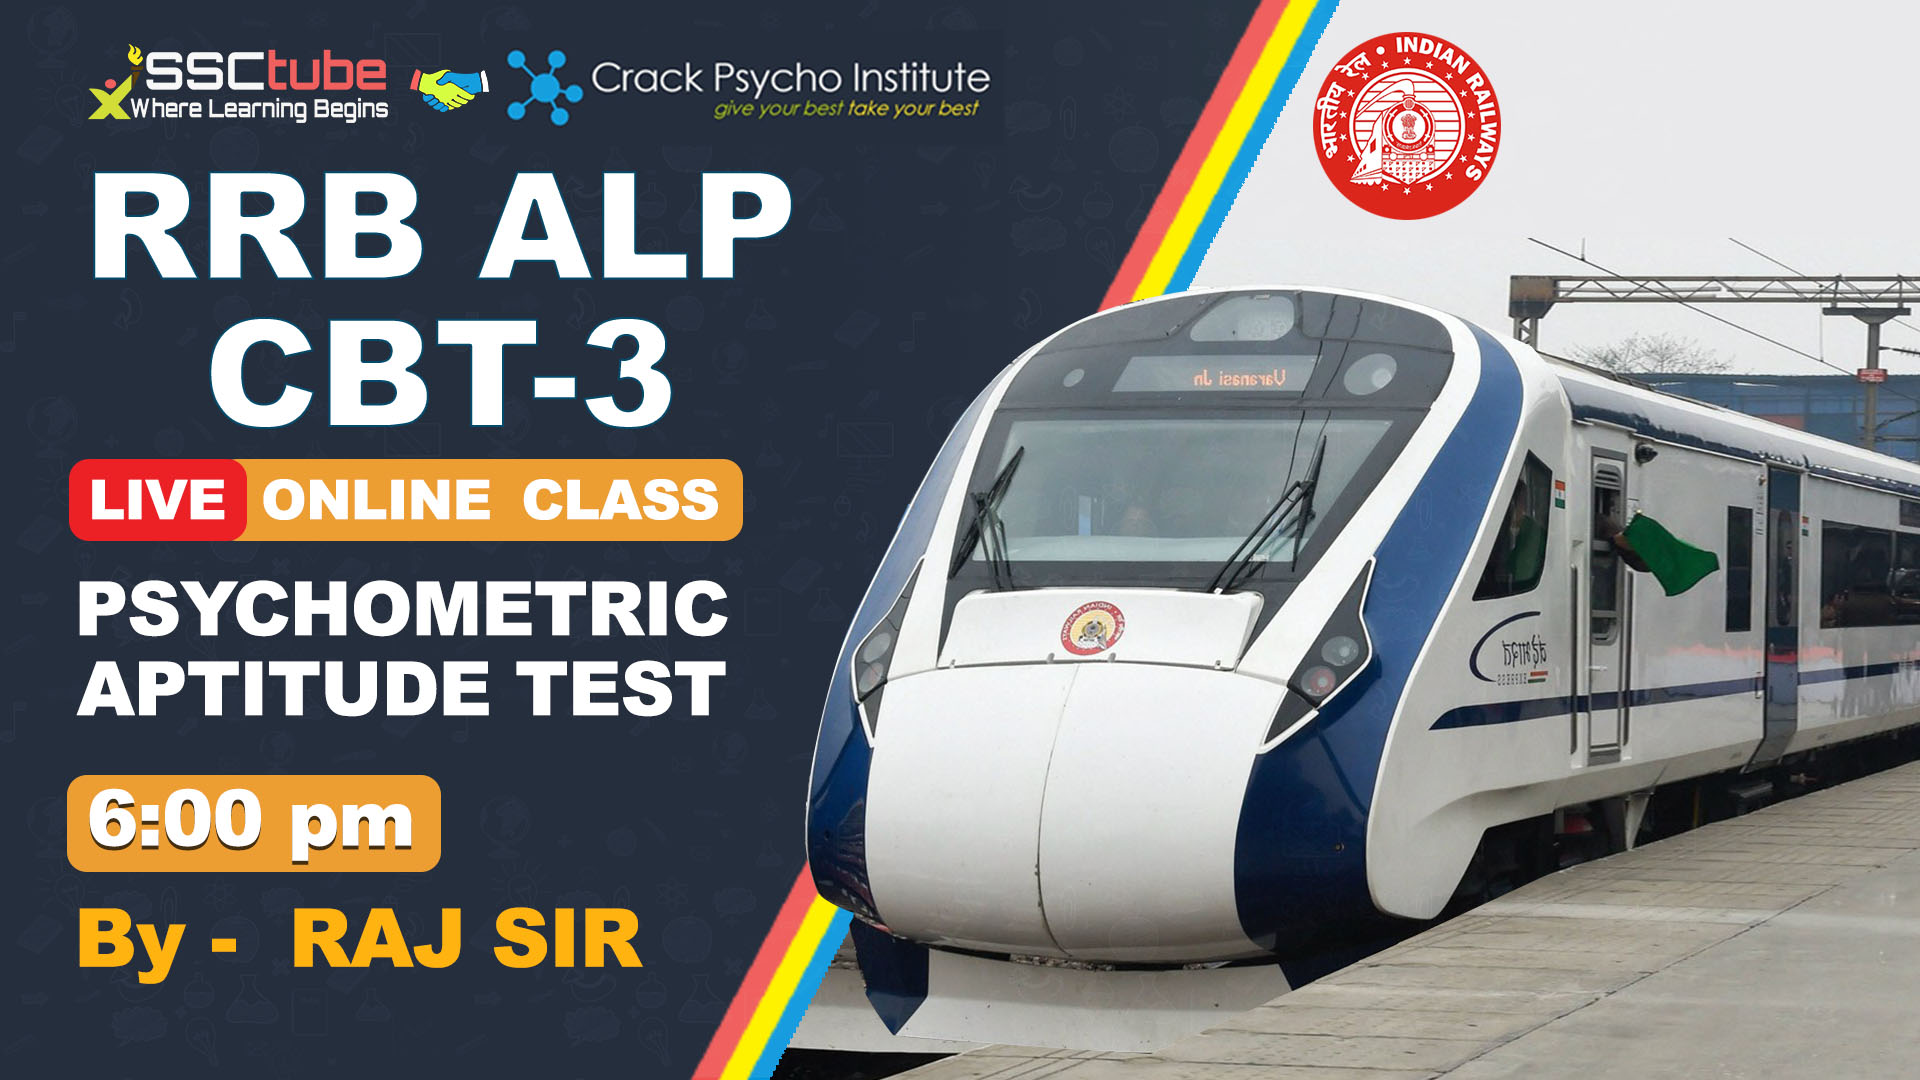 Session 4 | Psychometric Aptitude Test | By Raj Sir